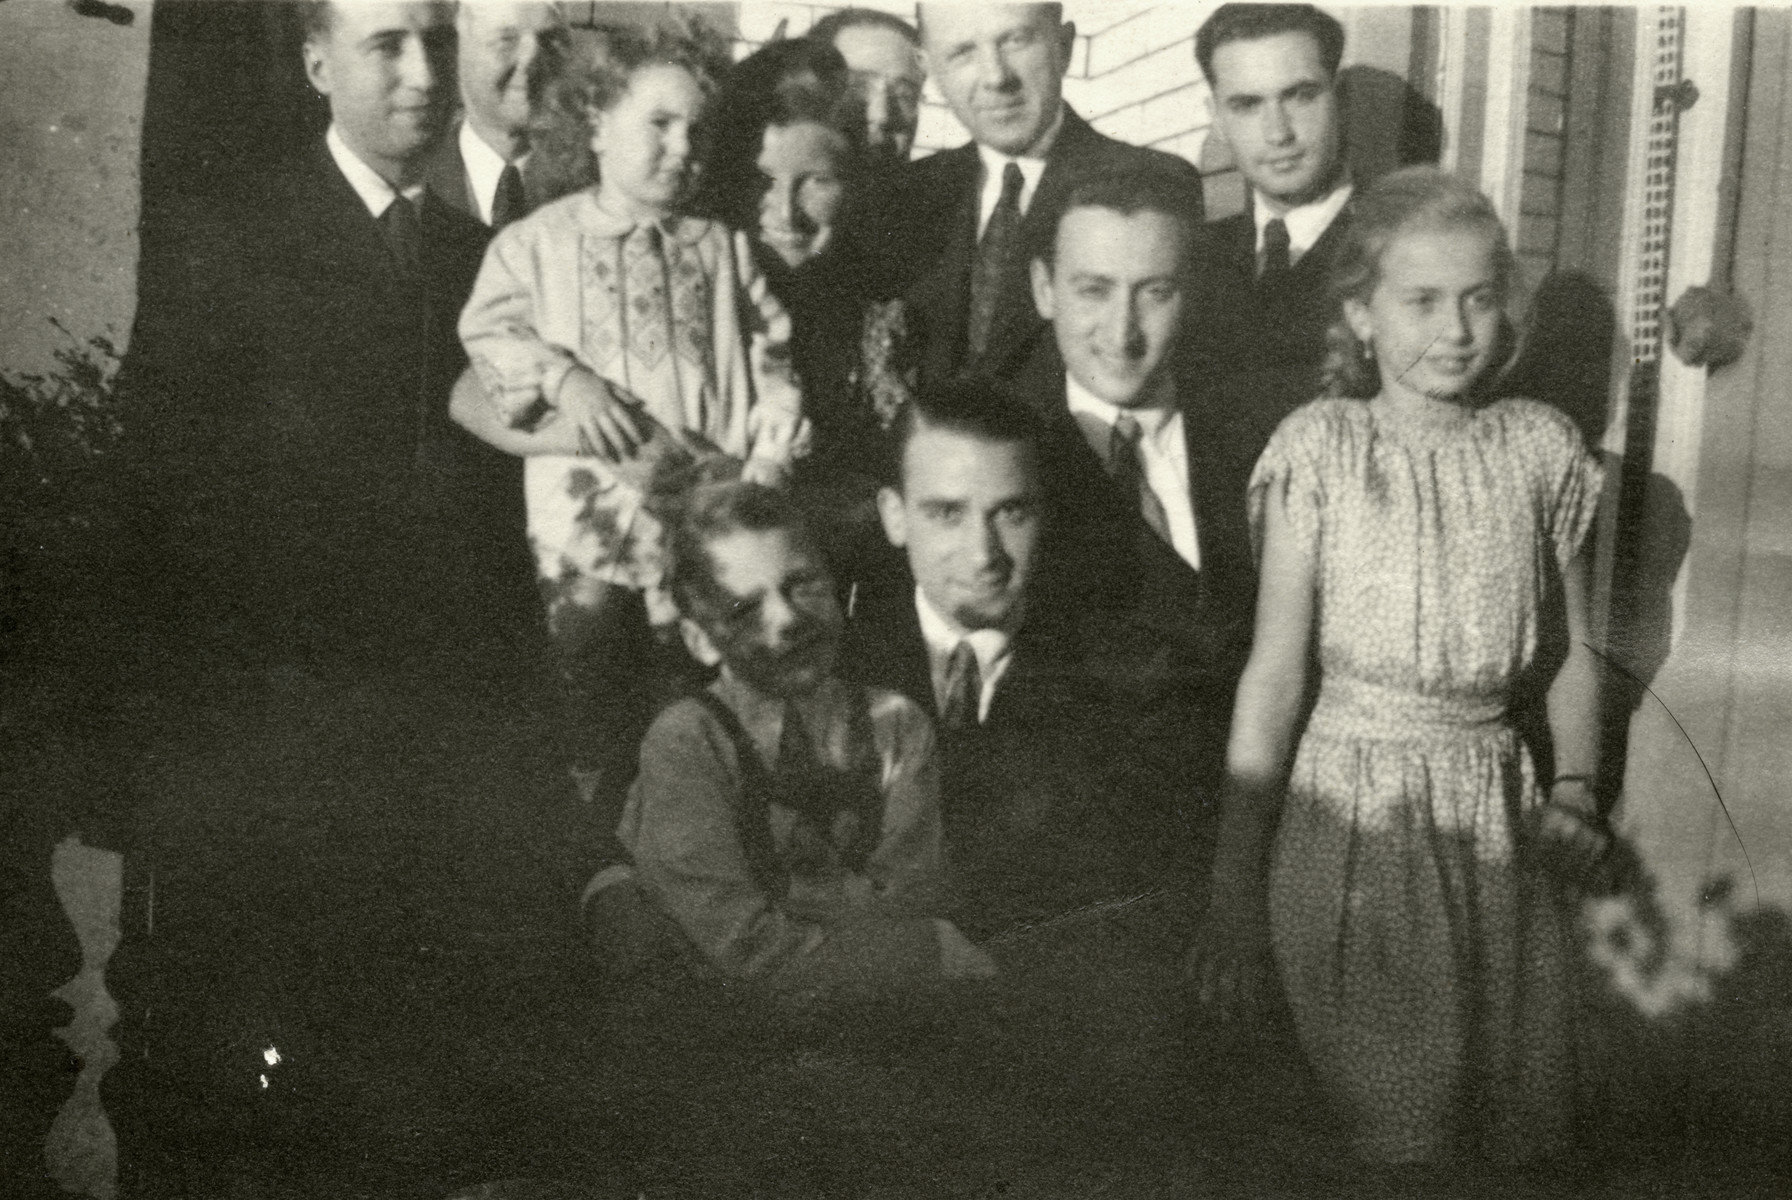 Mali Lamm, a Jew in hiding, poses with her rescuer's daughter and a group of men.  Mali Lam is pictured in back holding young child. Gerda Kreisse is pictured on the right.